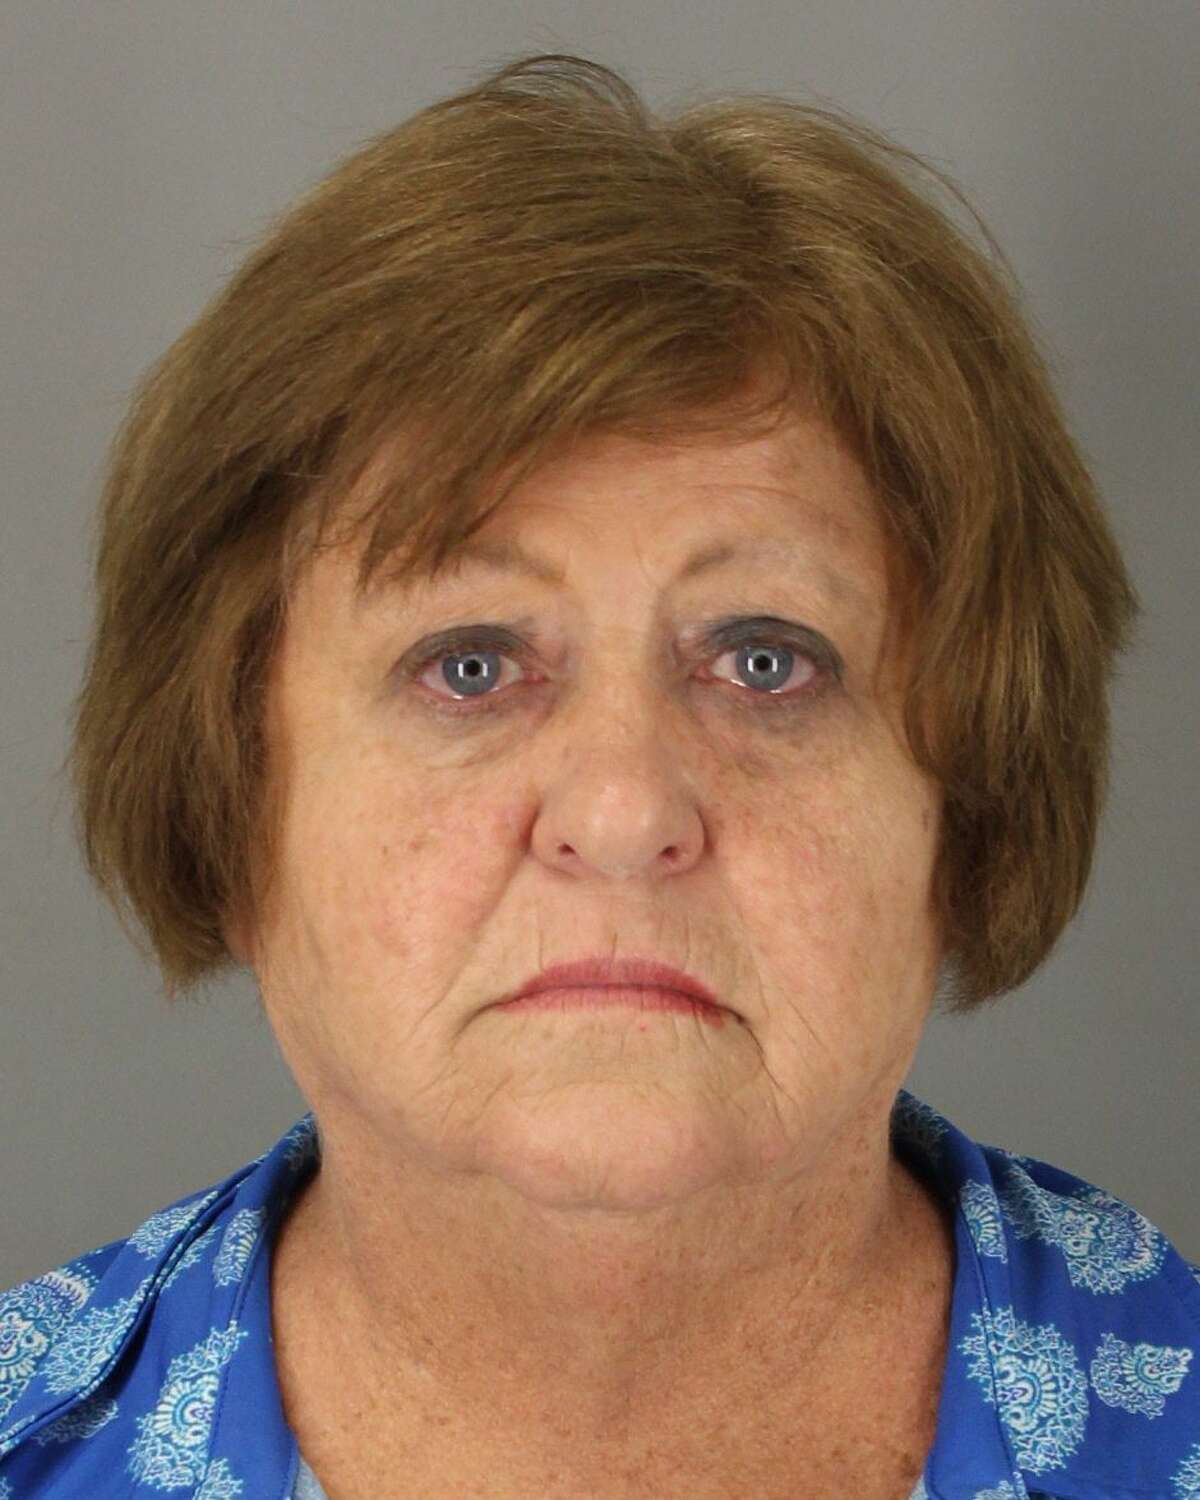 Ozen High School teacher Mary Hastings, 63, was arrested Friday and charged with misdemeanor assault after a video surfaced showing her repeatedly striking a student. Hastings was released after posting a $2,500 bond.